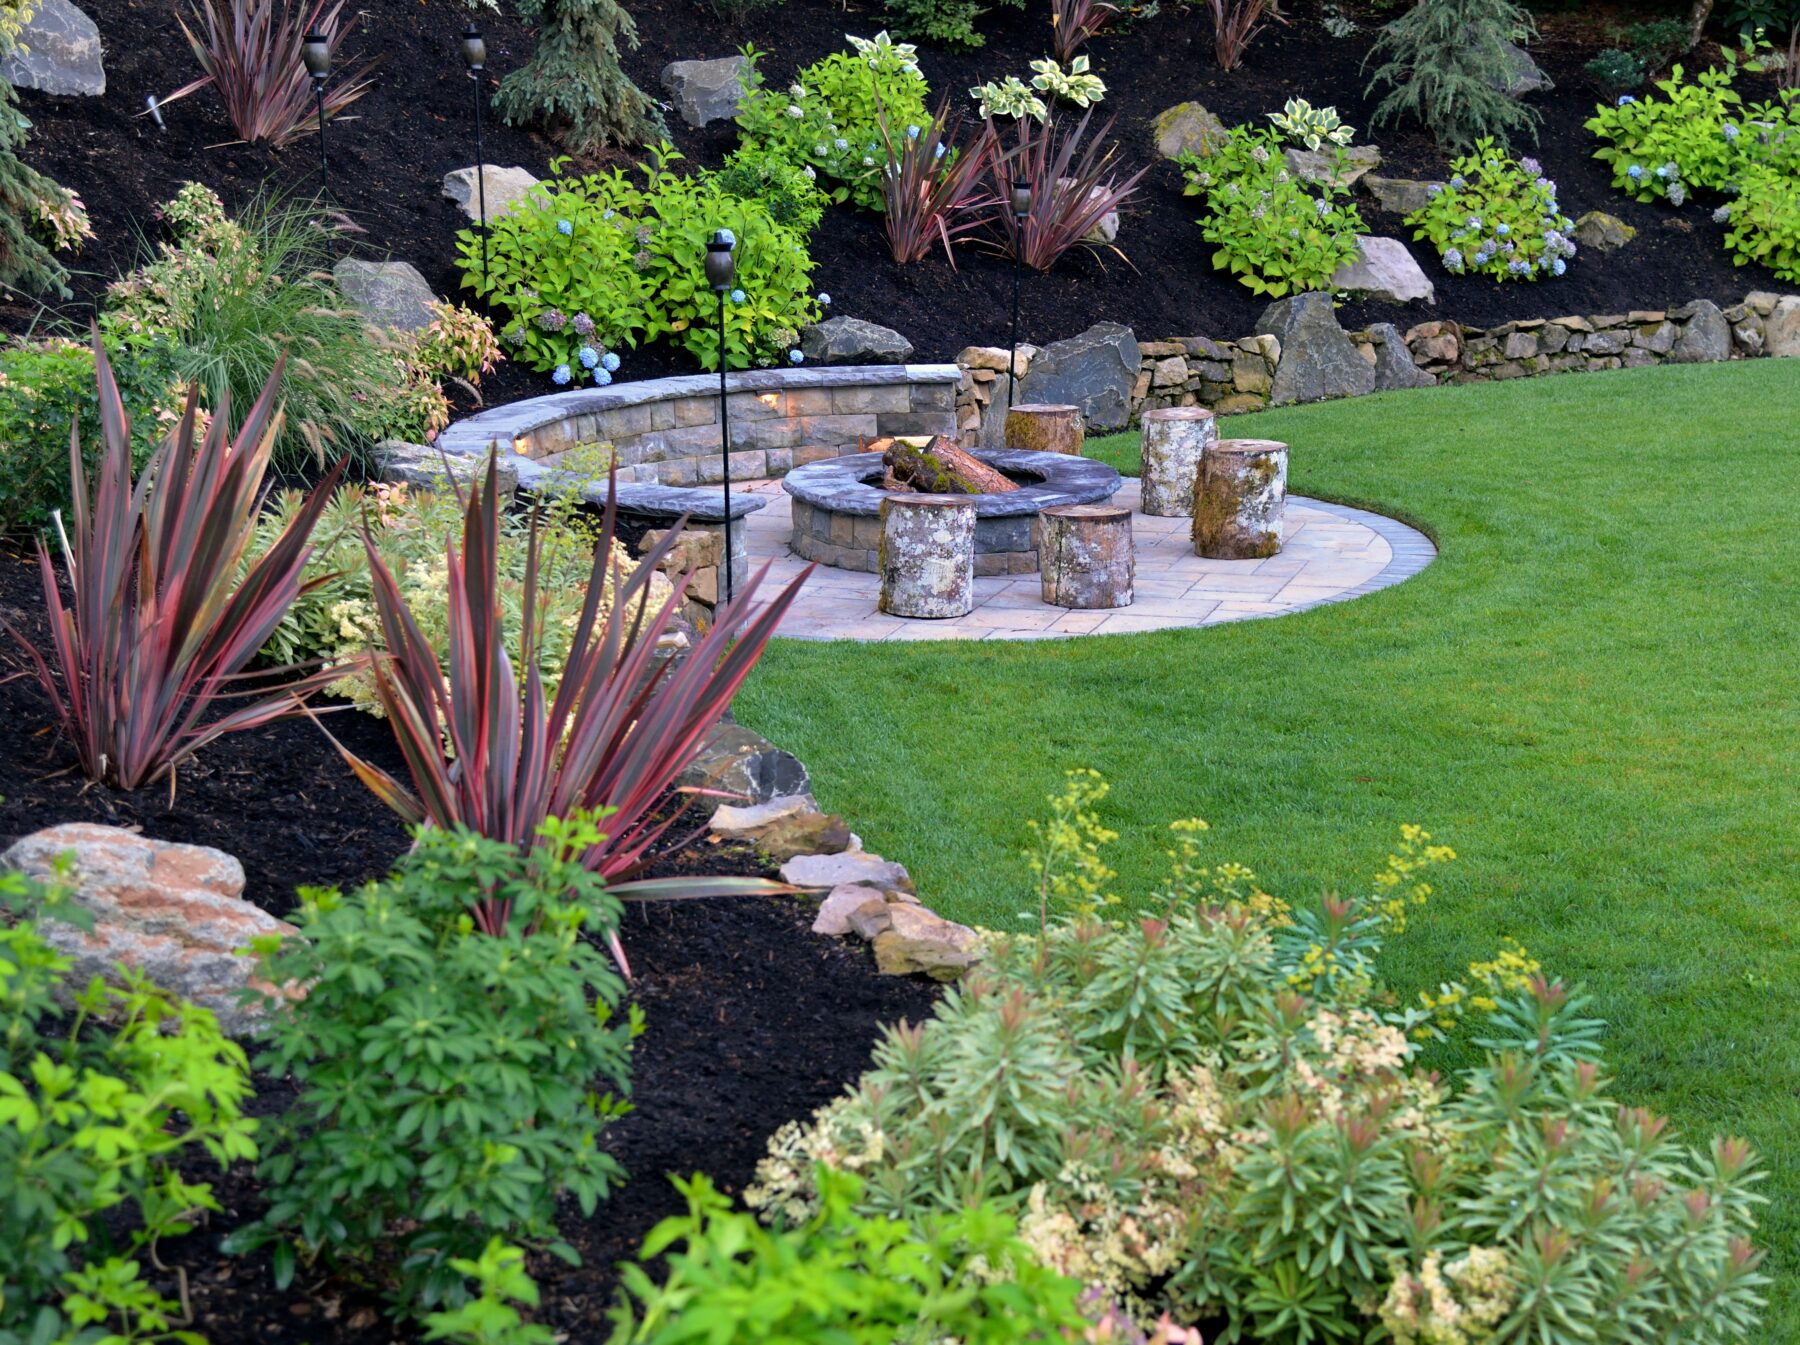 An example of Vancouver landscape design and landscape construction work